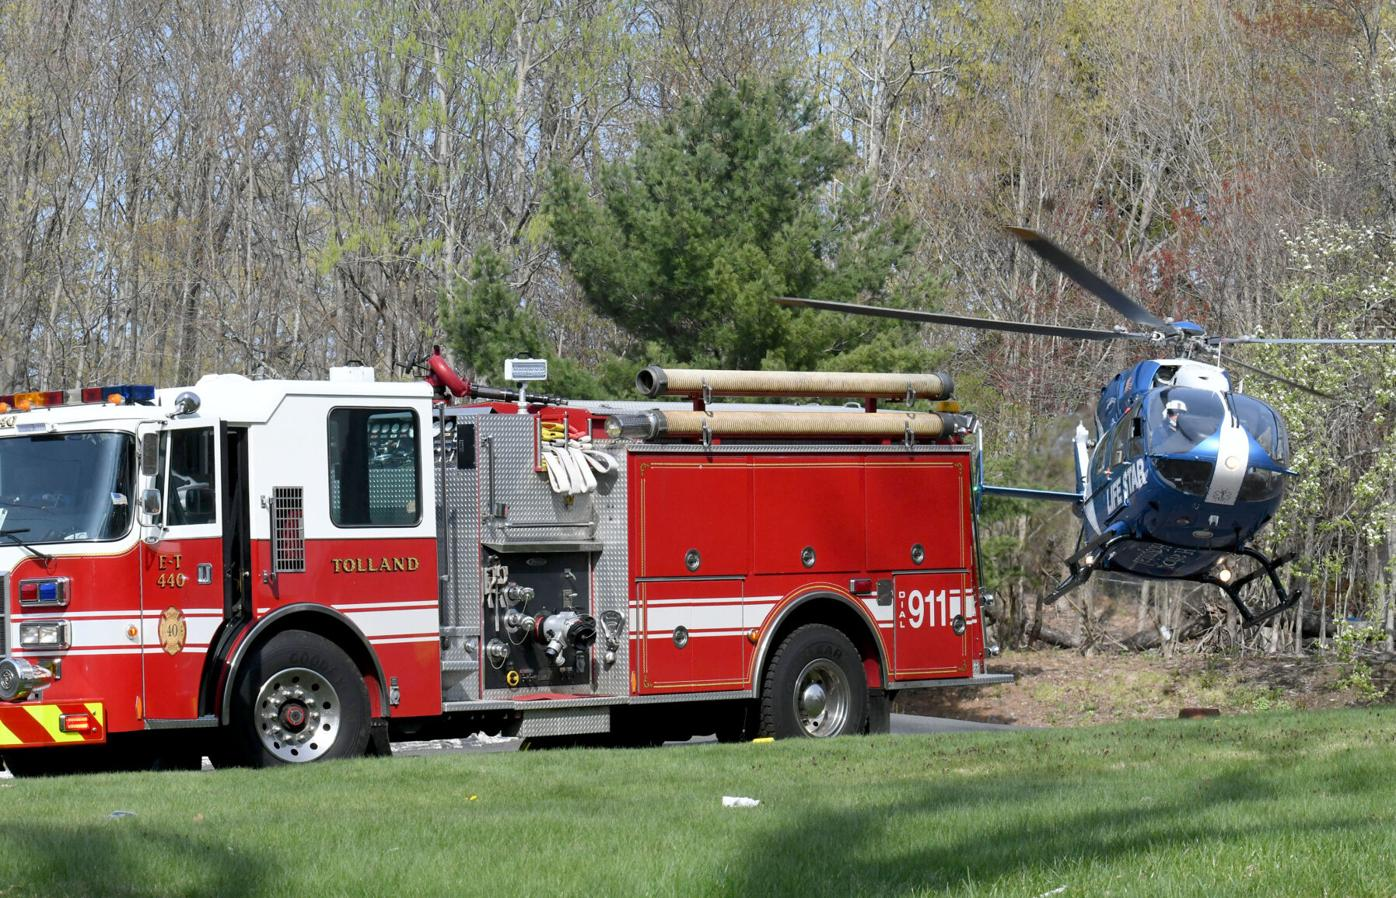 042721 TO Lifestar Motorcycle Accident 02.jpg